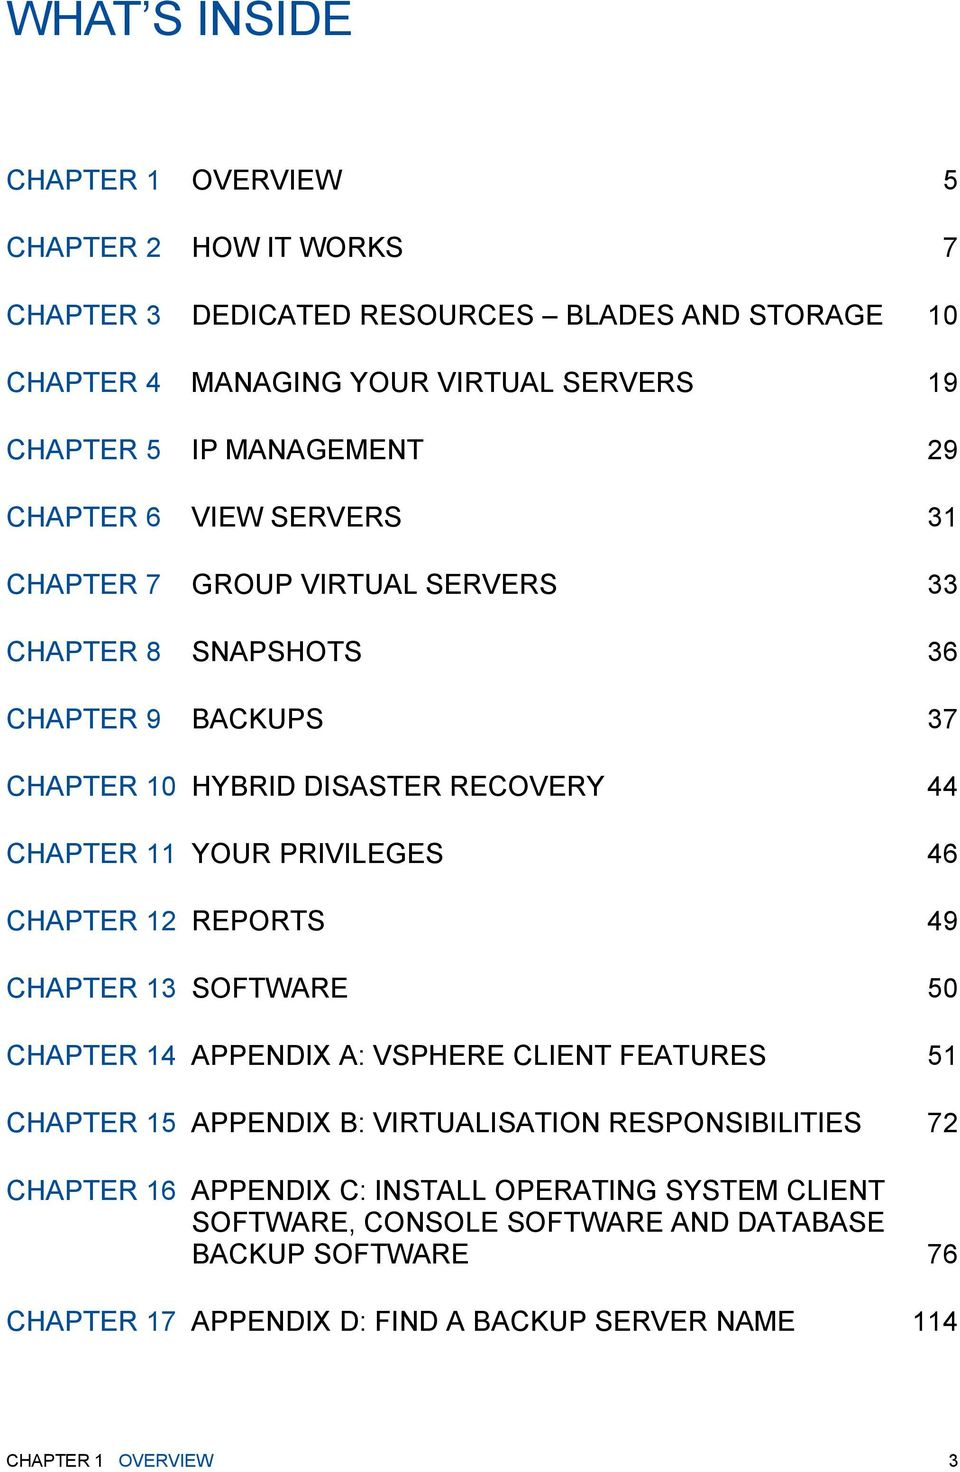 PRIVILEGES 46 CHAPTER 12 REPORTS 49 CHAPTER 13 SOFTWARE 50 CHAPTER 14 APPENDIX A: VSPHERE CLIENT FEATURES 51 CHAPTER 15 APPENDIX B: VIRTUALISATION RESPONSIBILITIES 72